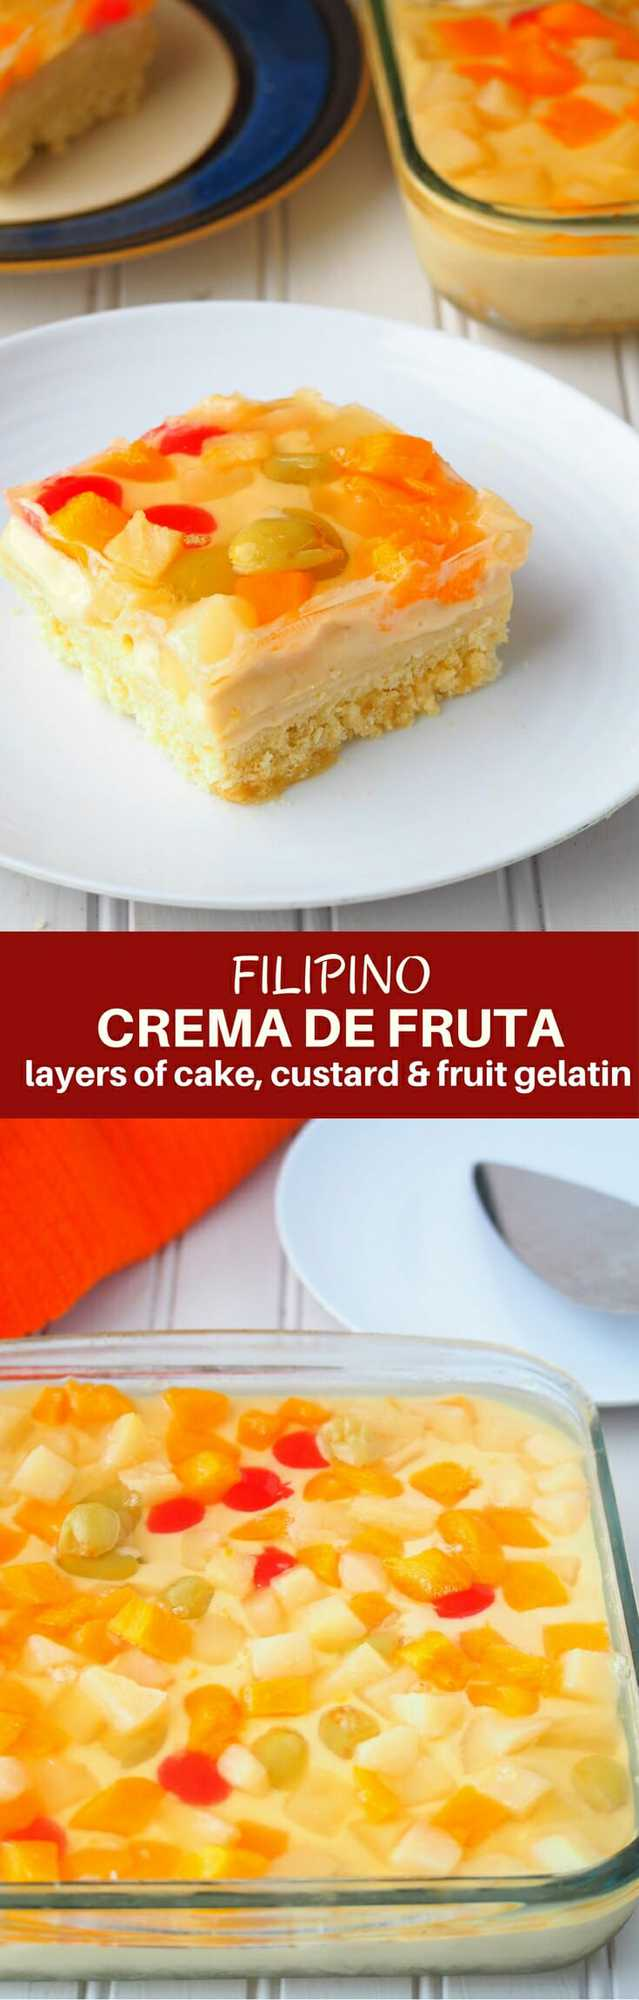 Crema de Fruta Recipe made with sponge cake, custard, and fruit gelatin is festive cake you'll love year round!